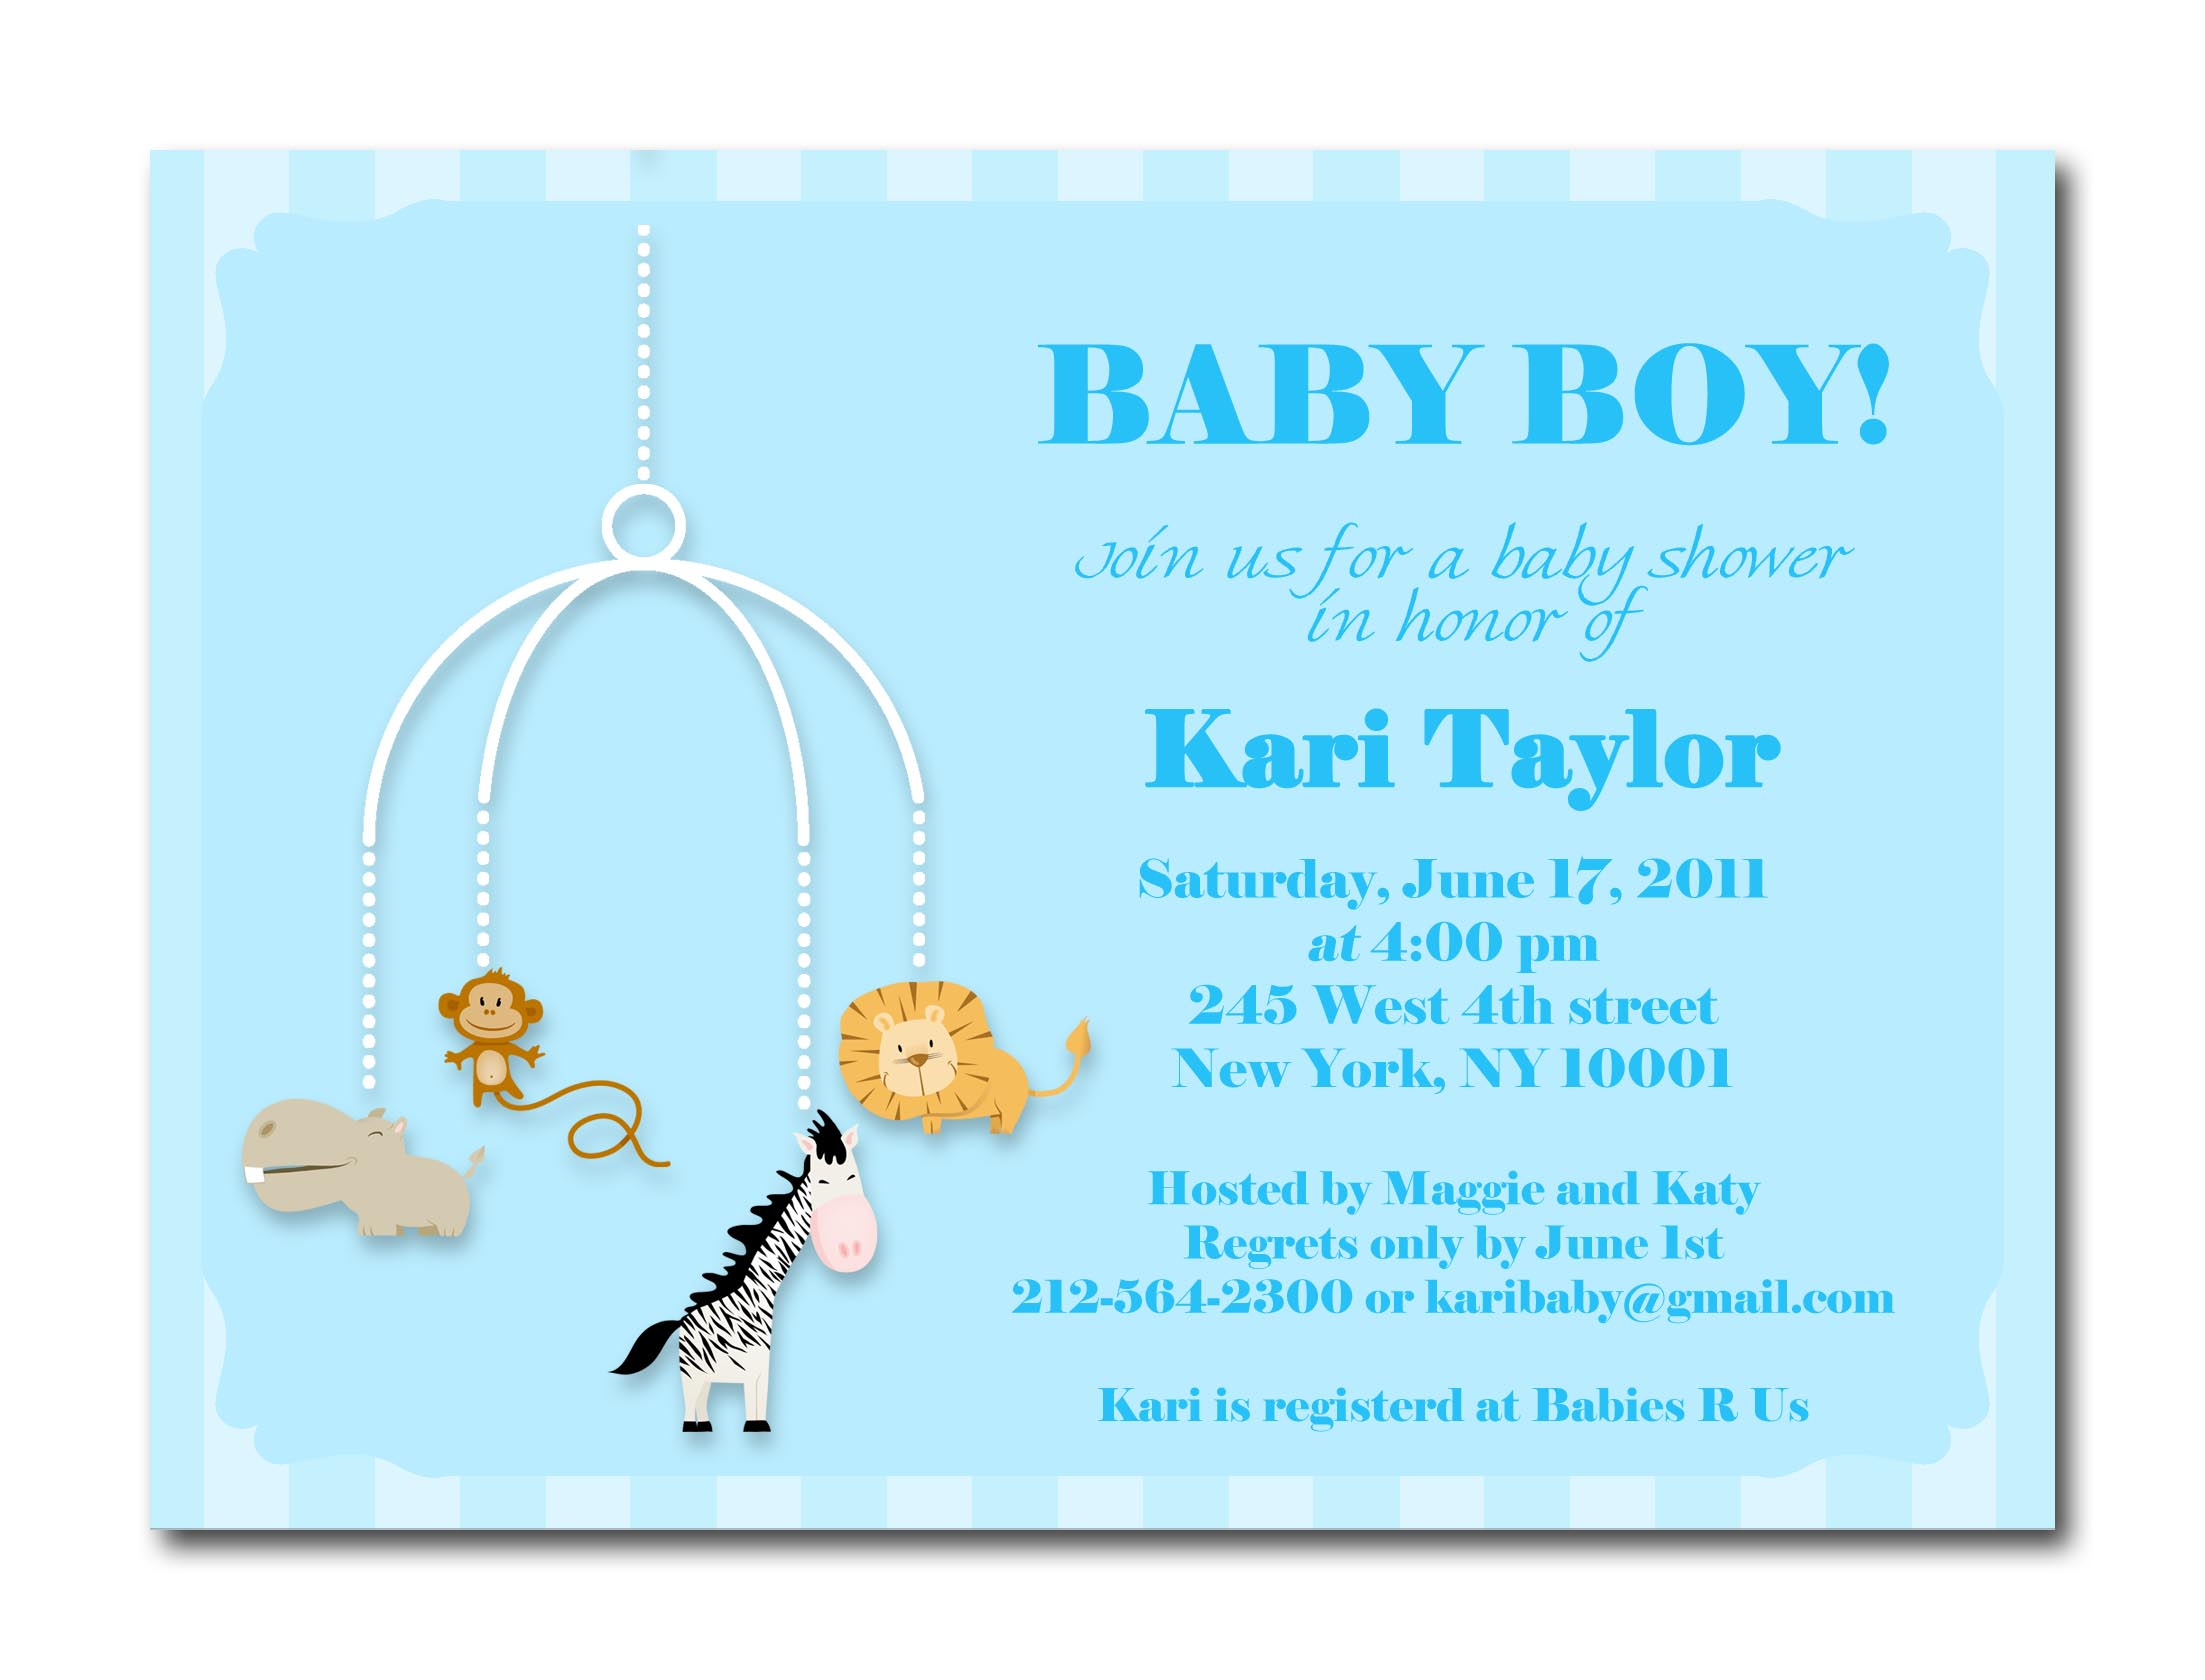 Baby Shower Invitation Cards Samples